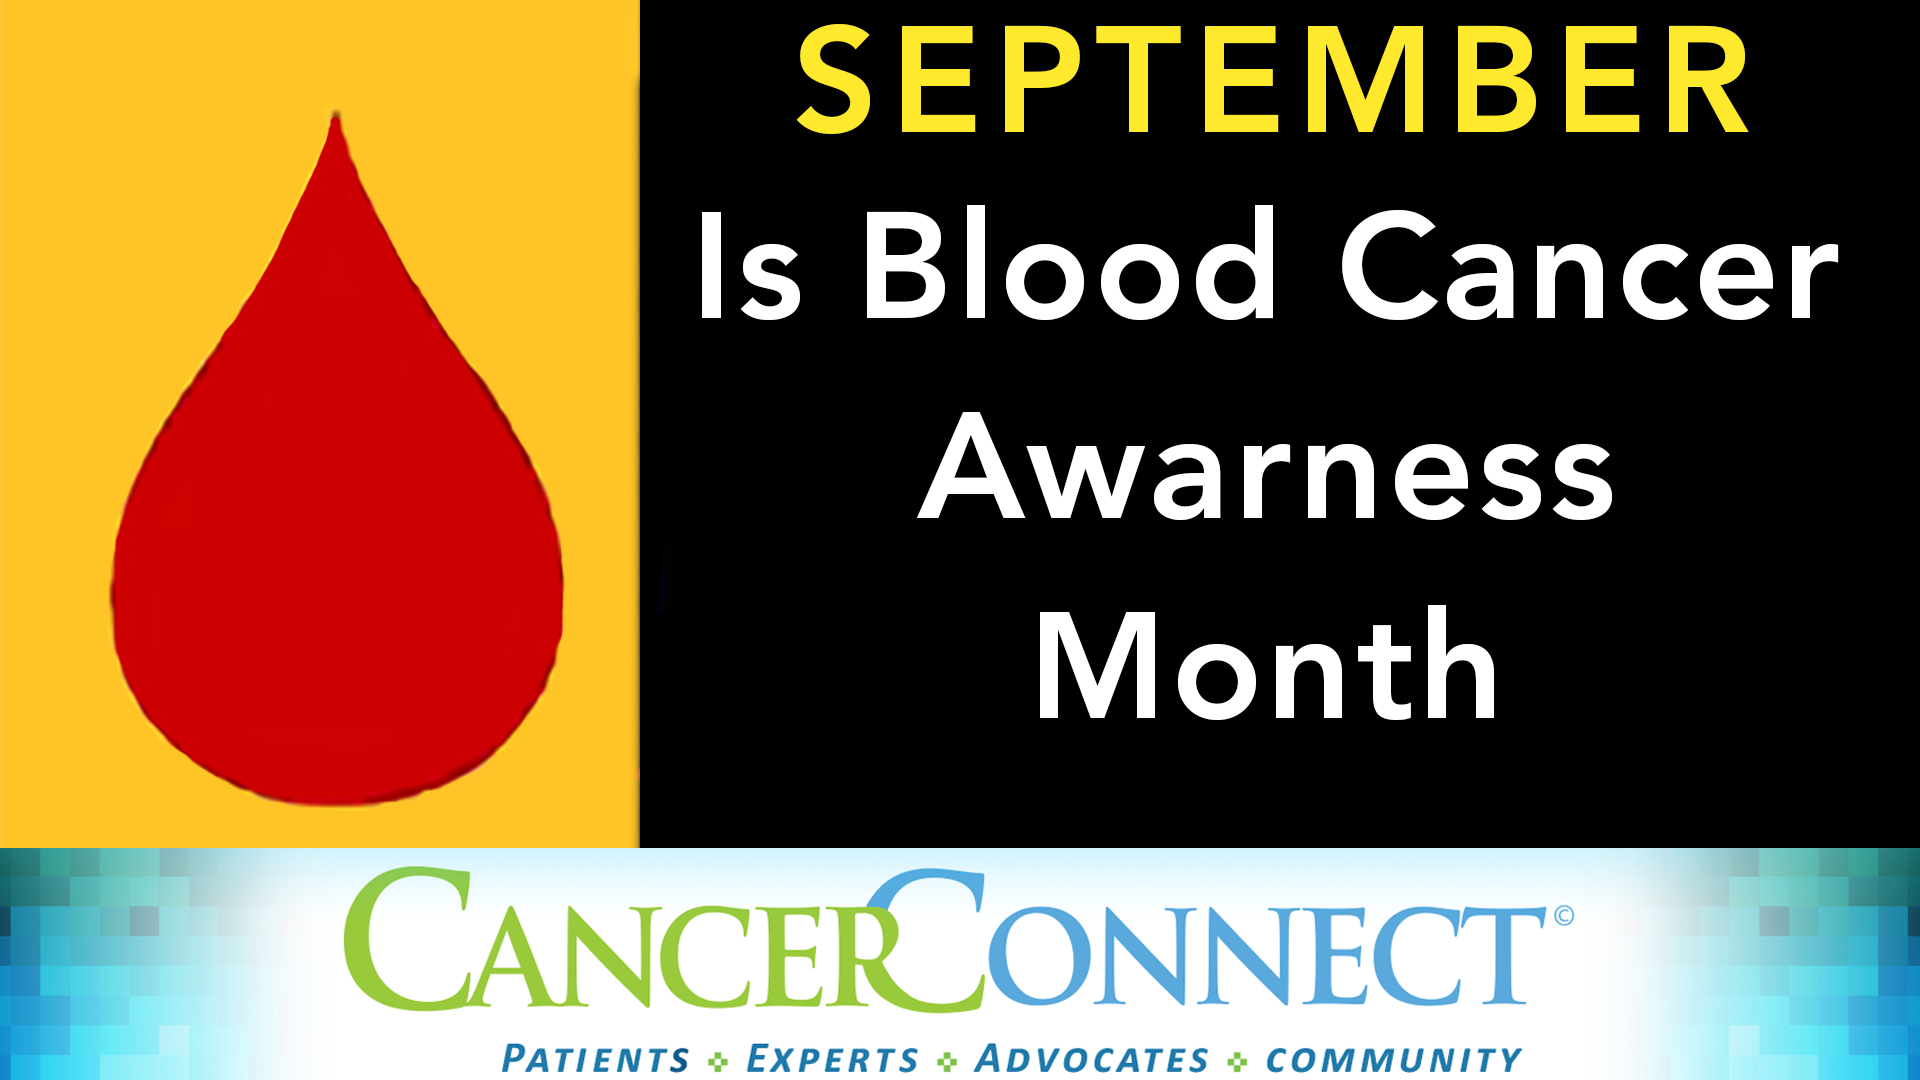 September Is National Blood Cancer Awareness Month